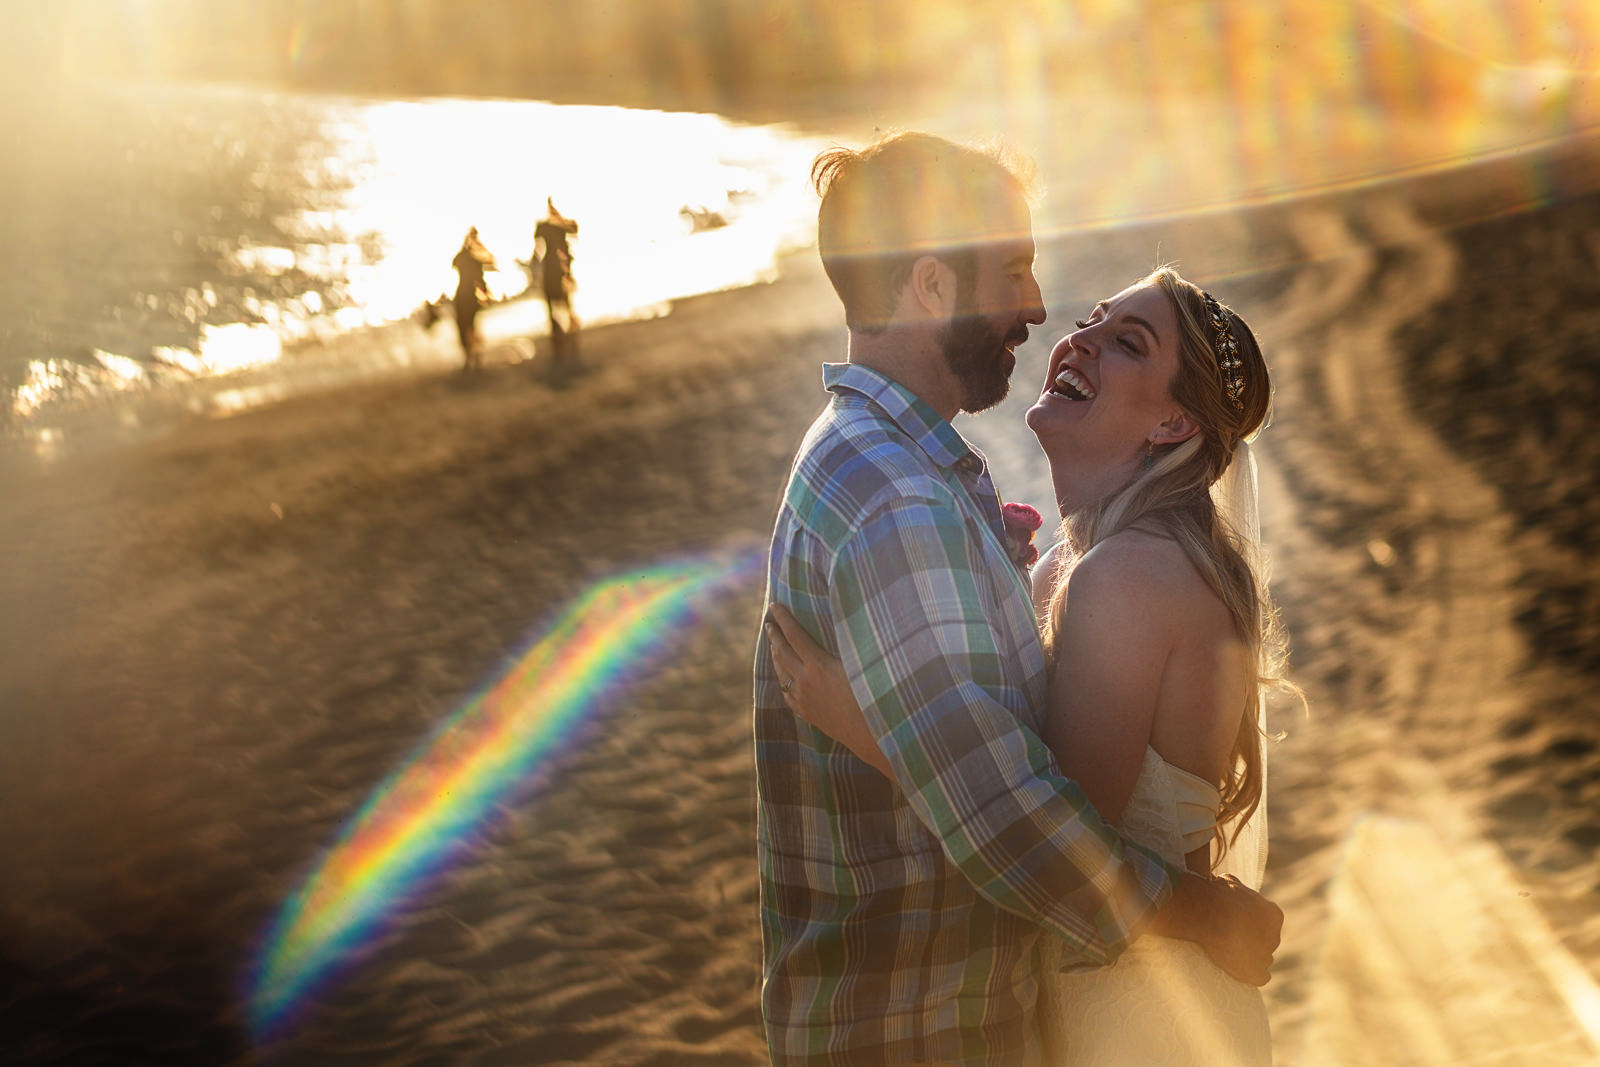 Bride and groom standing on the beach during the sunset through a lens flare.